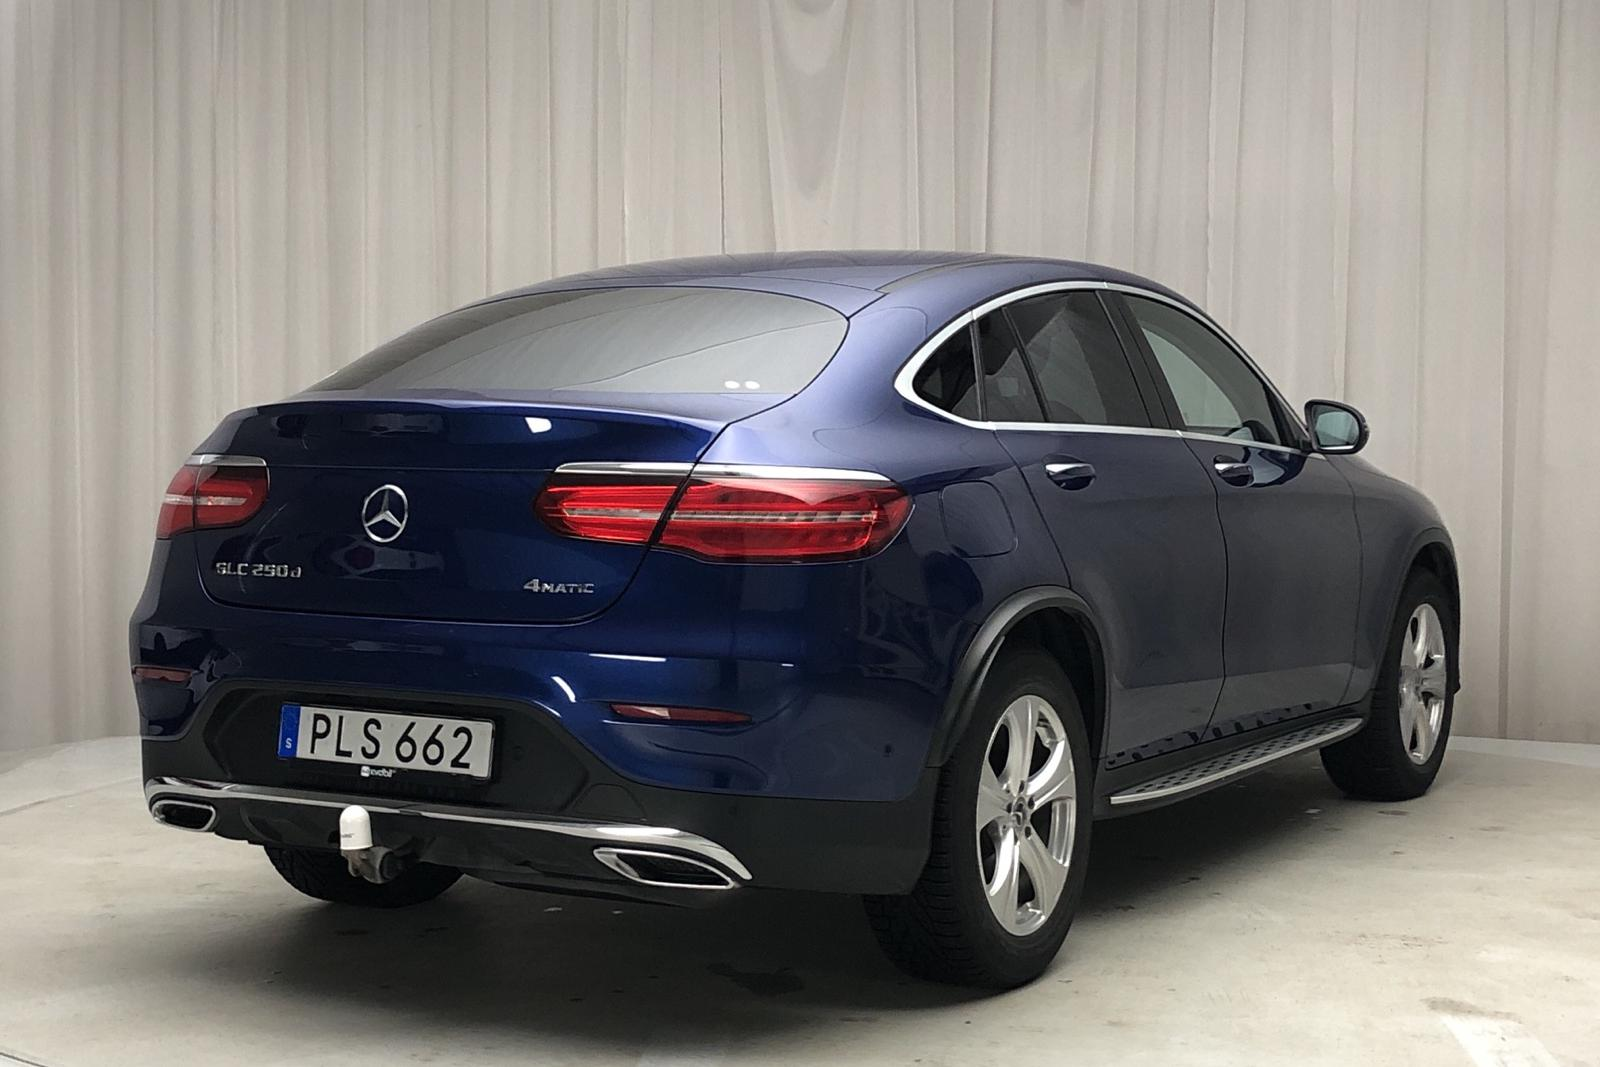 Mercedes GLC 250 d 4MATIC Coupé C253 (204hk) - 54 310 km - Automatic - blue - 2017